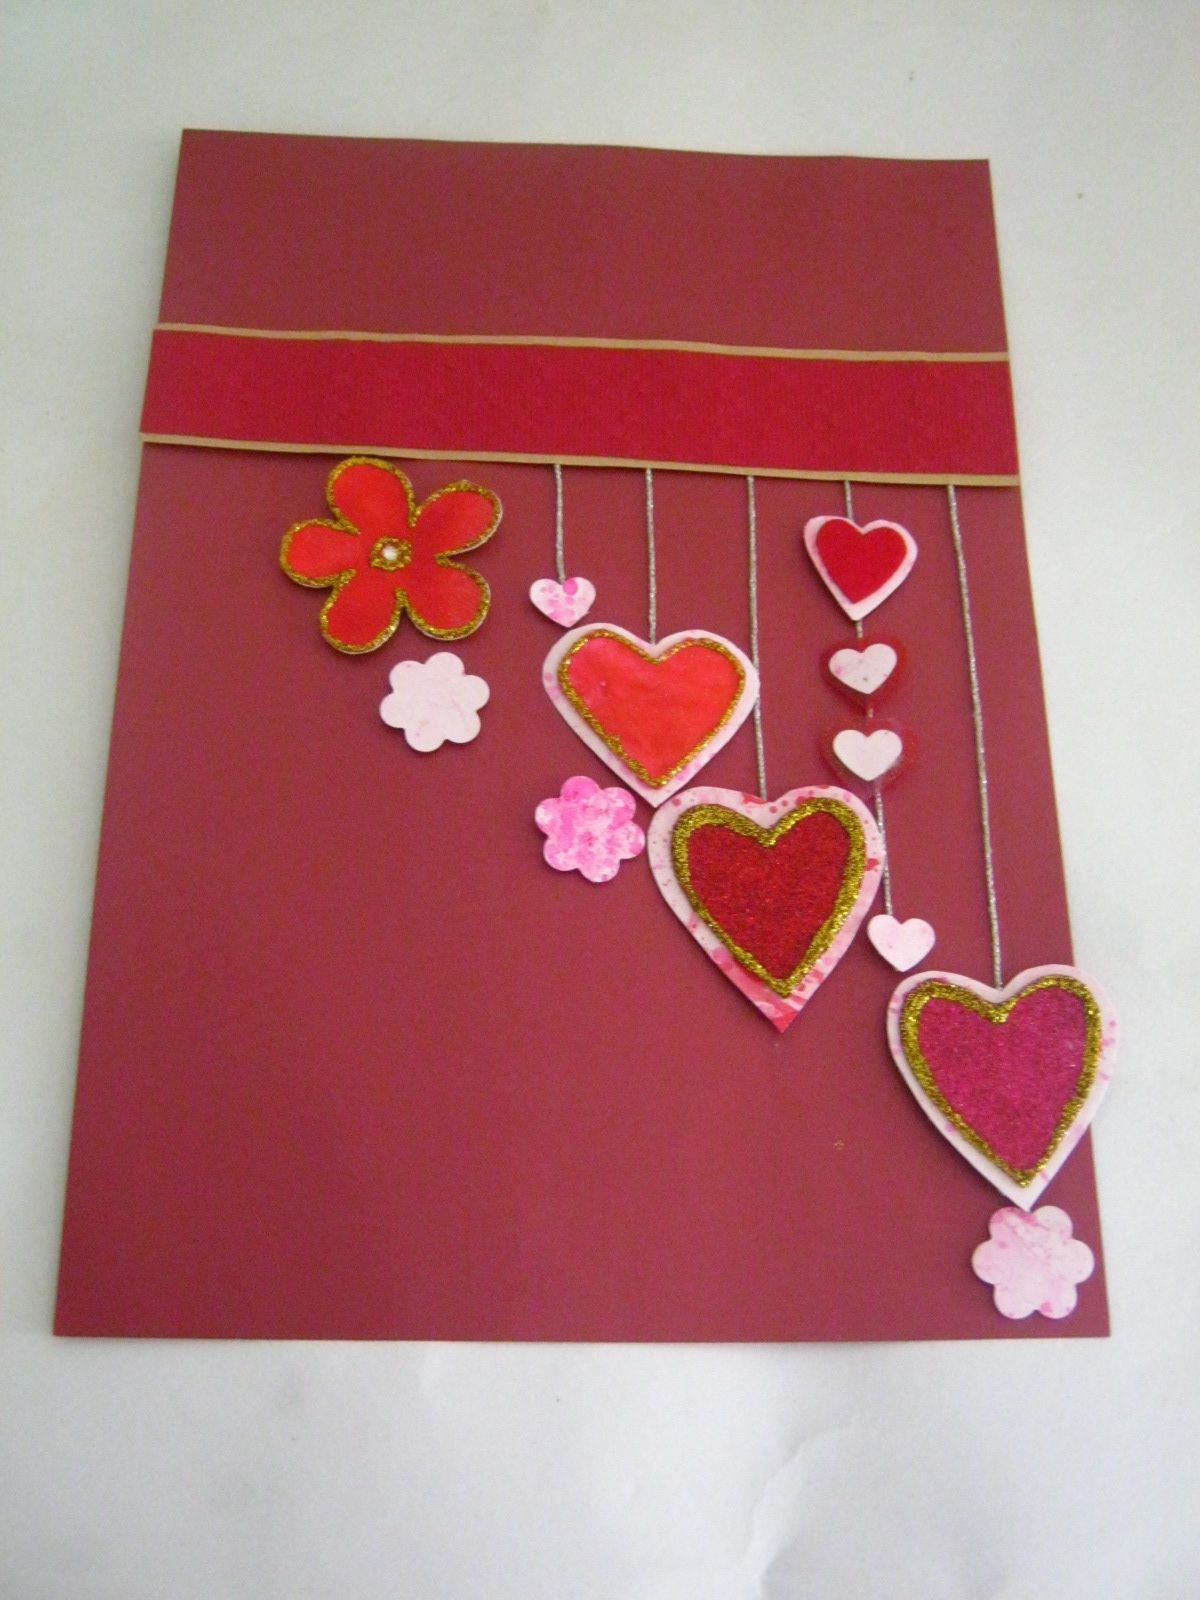 How to make scrapbook with construction paper - Make Scrapbook Pages For Your Valentine Using Marbled Paper Heart Cut Outs Create